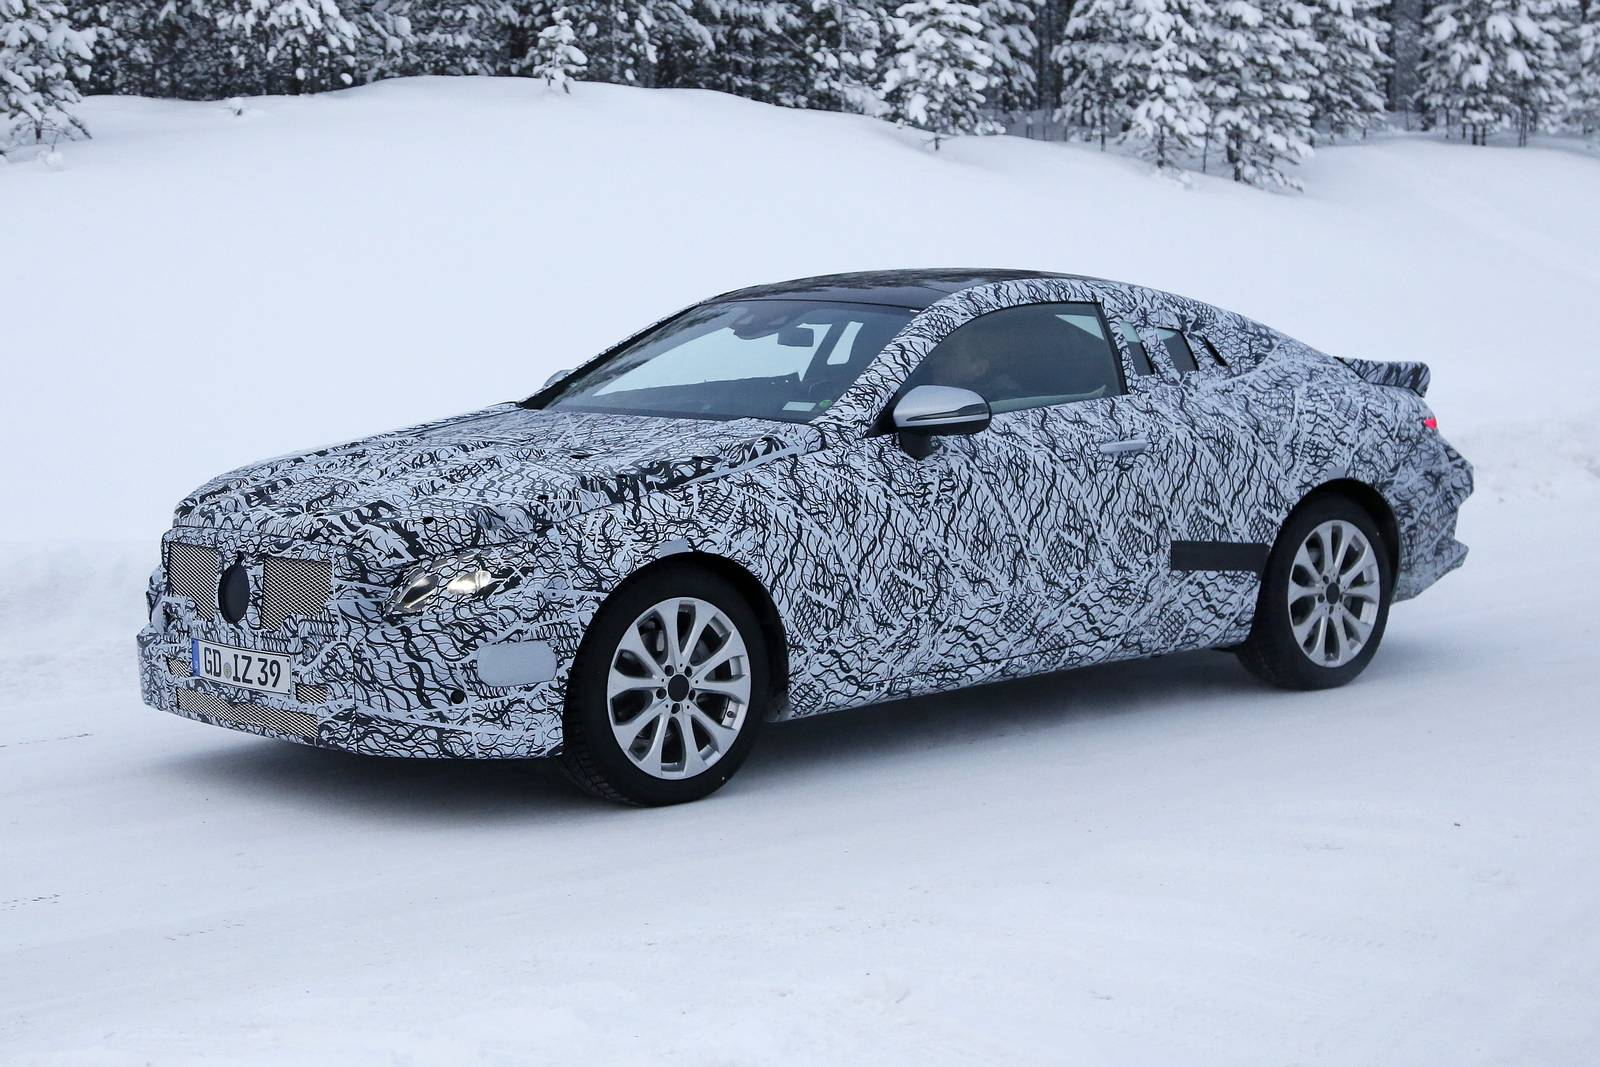 2018 Mercedes-Benz E-Class Coupe and Estate Spy Shots